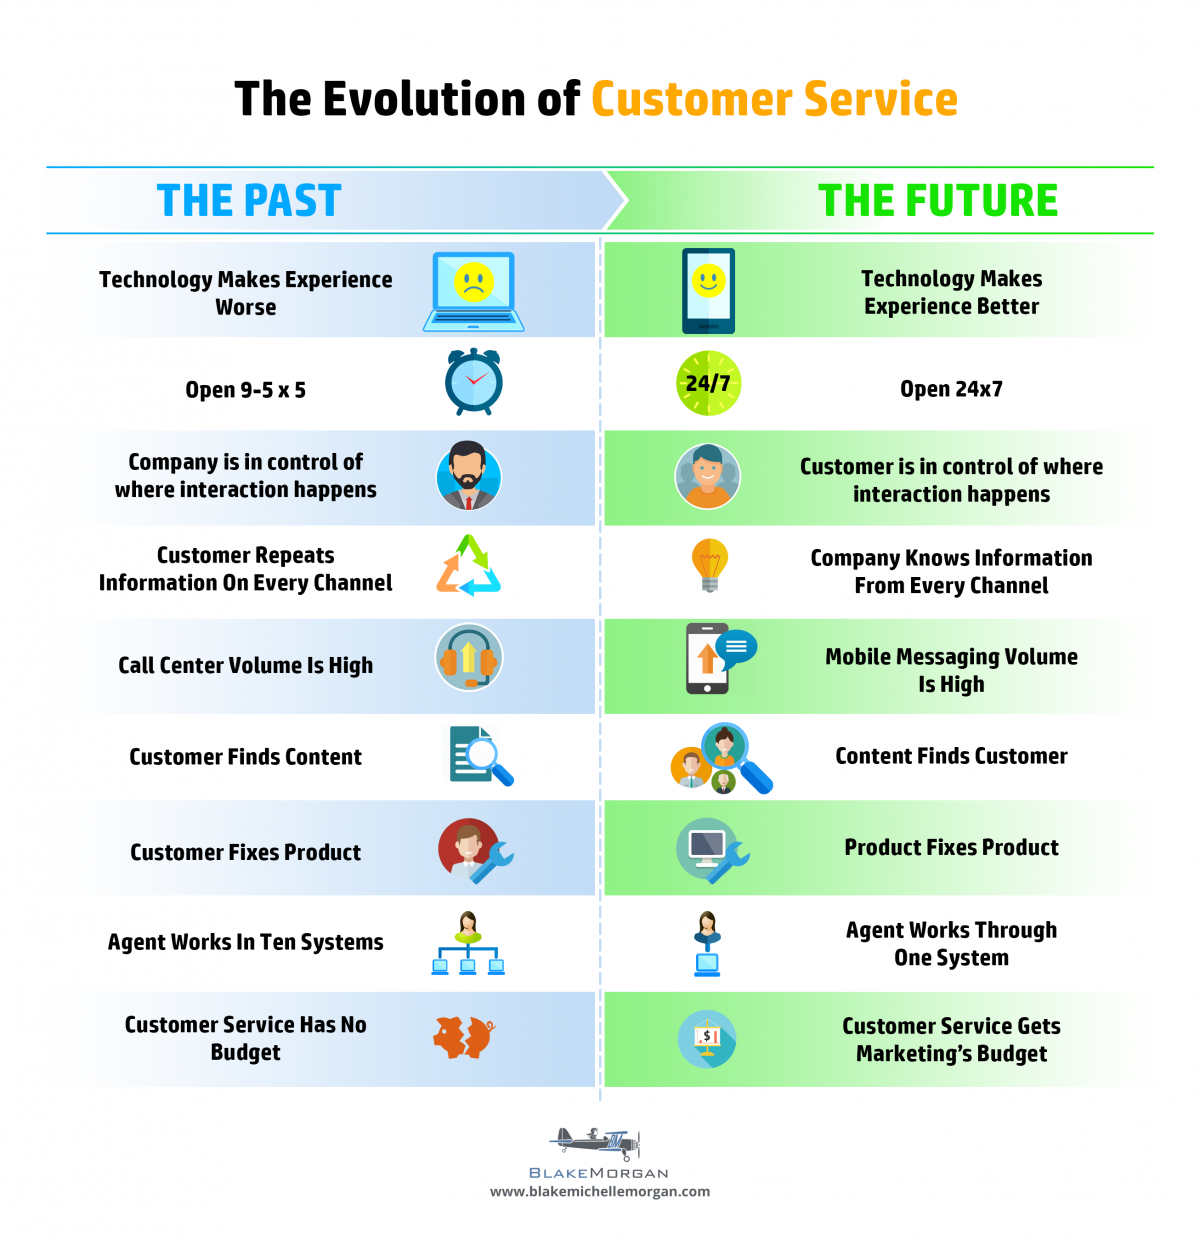 9 Predictions of the customer service future